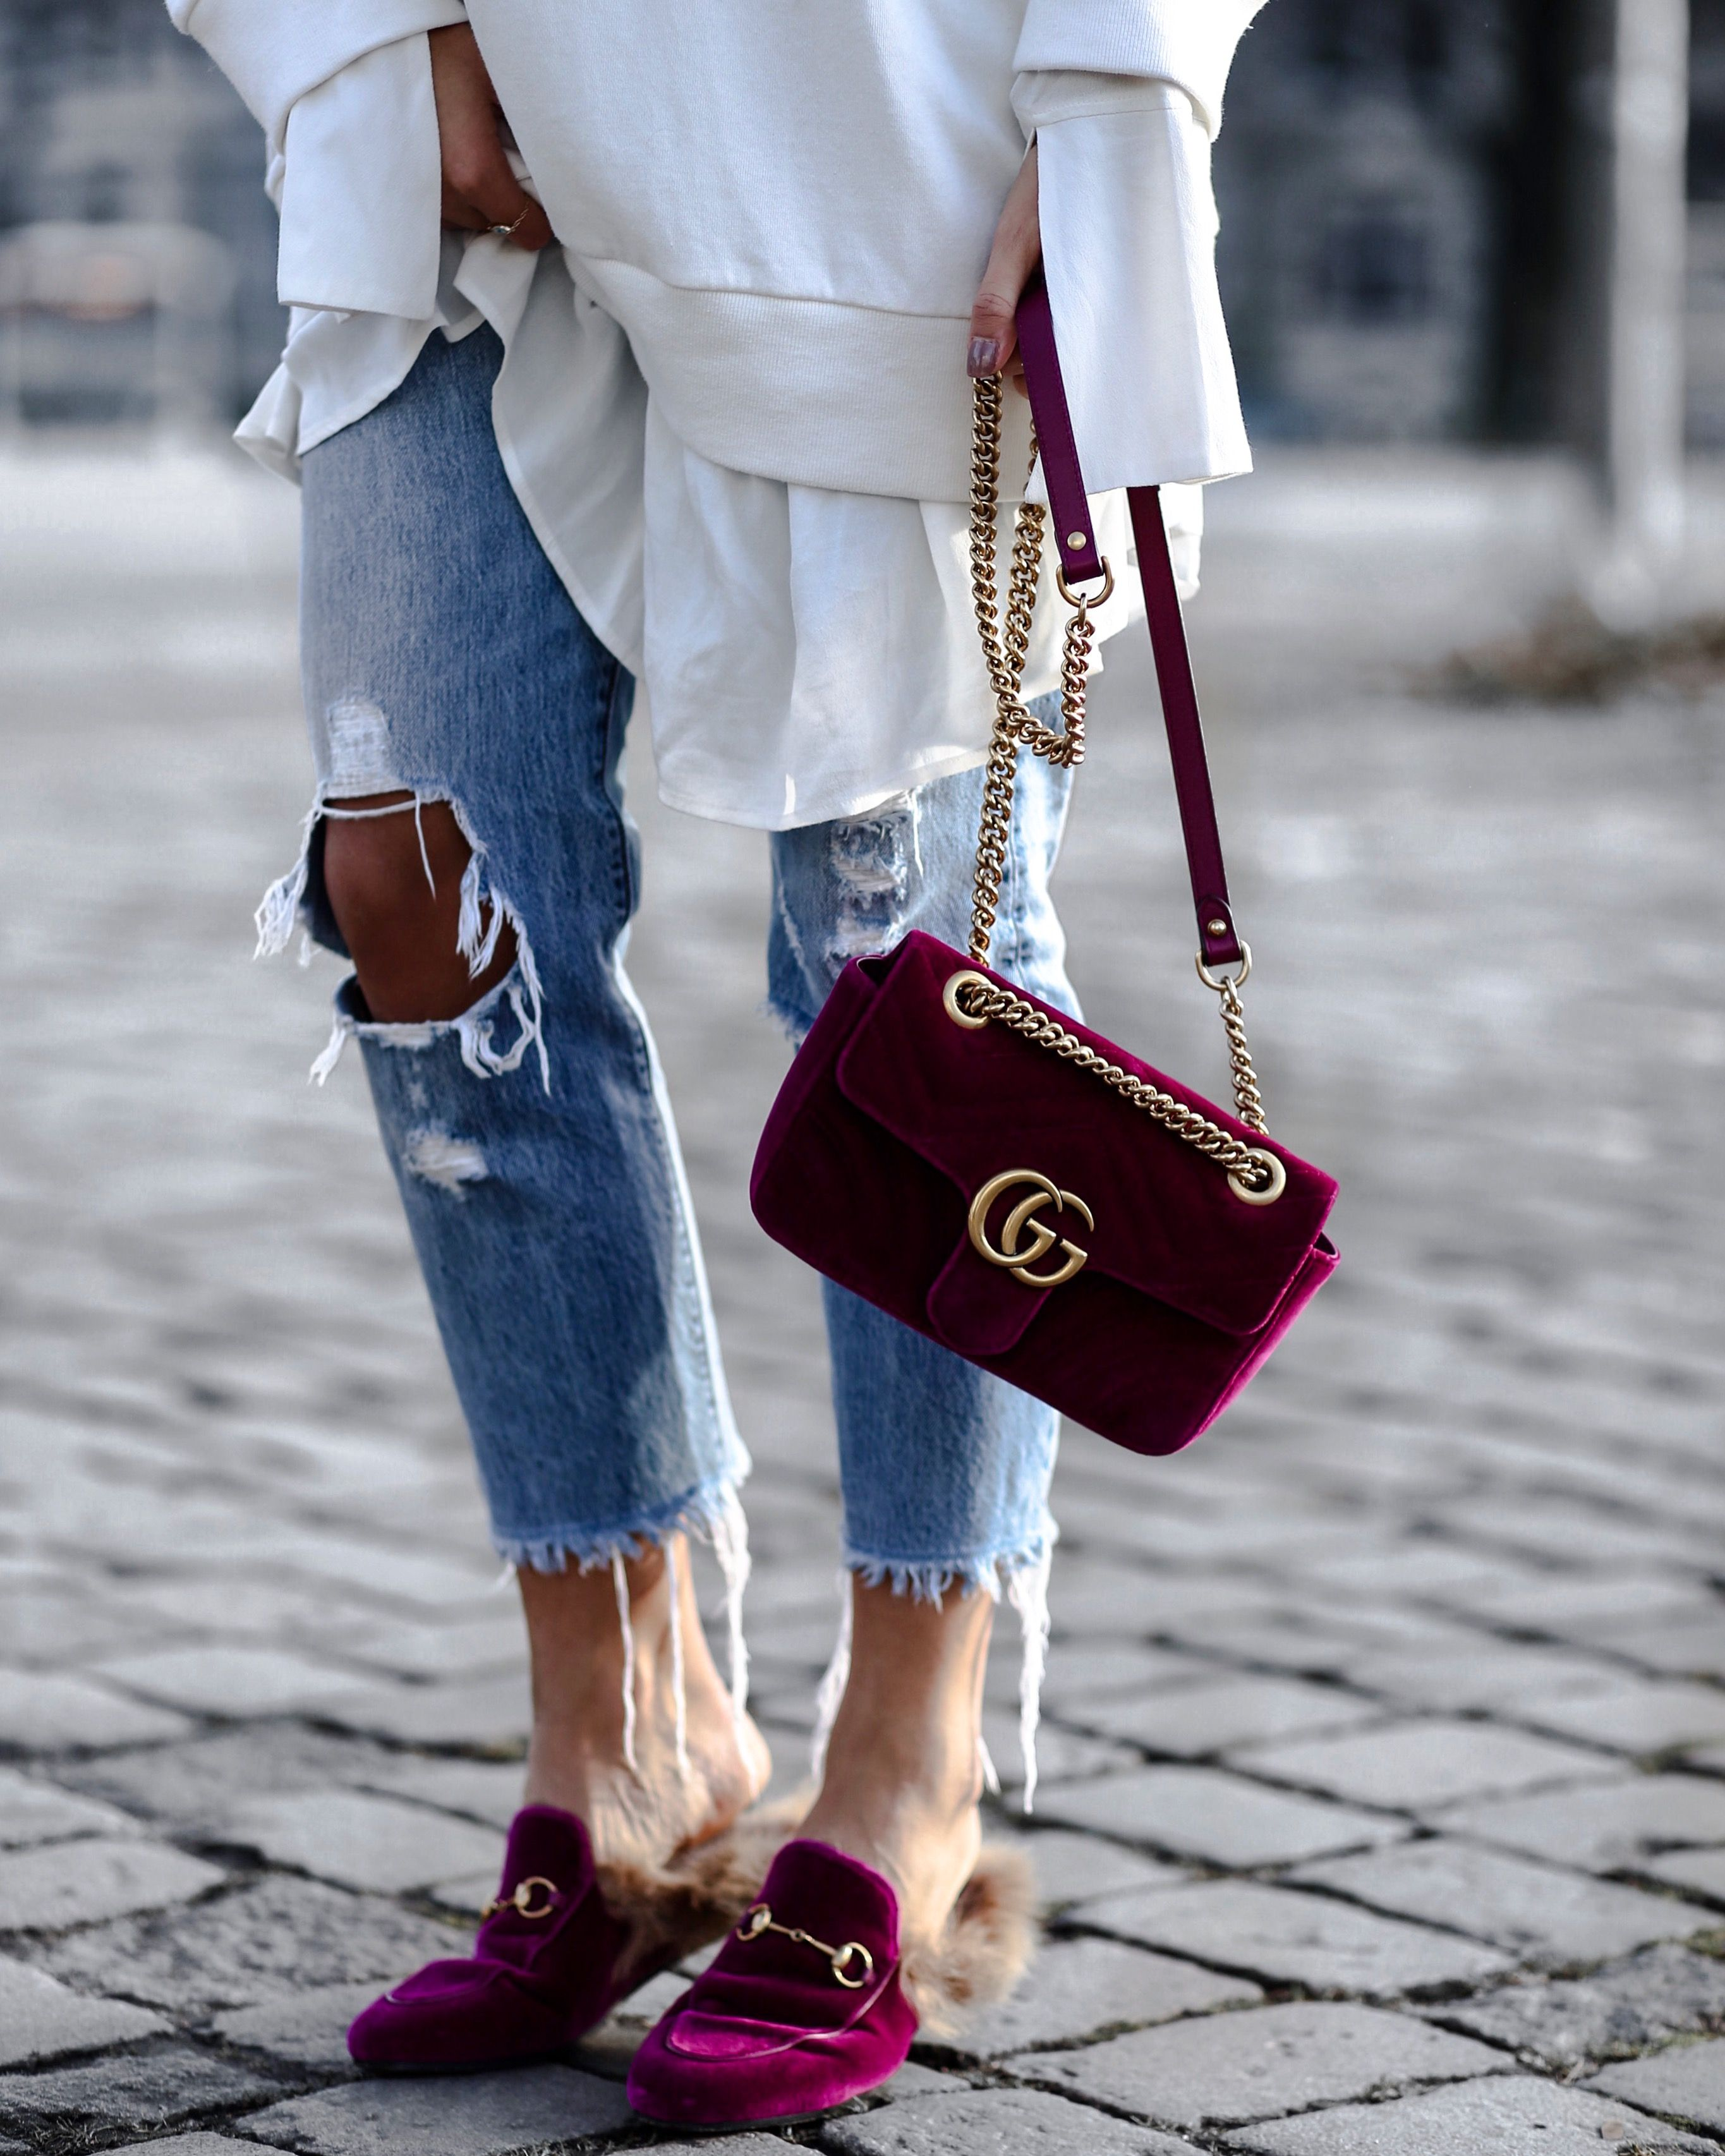 cb8f2f5b8706 Gucci marmont velvet bag - princetown loafer   TRENDS I LOVE ...